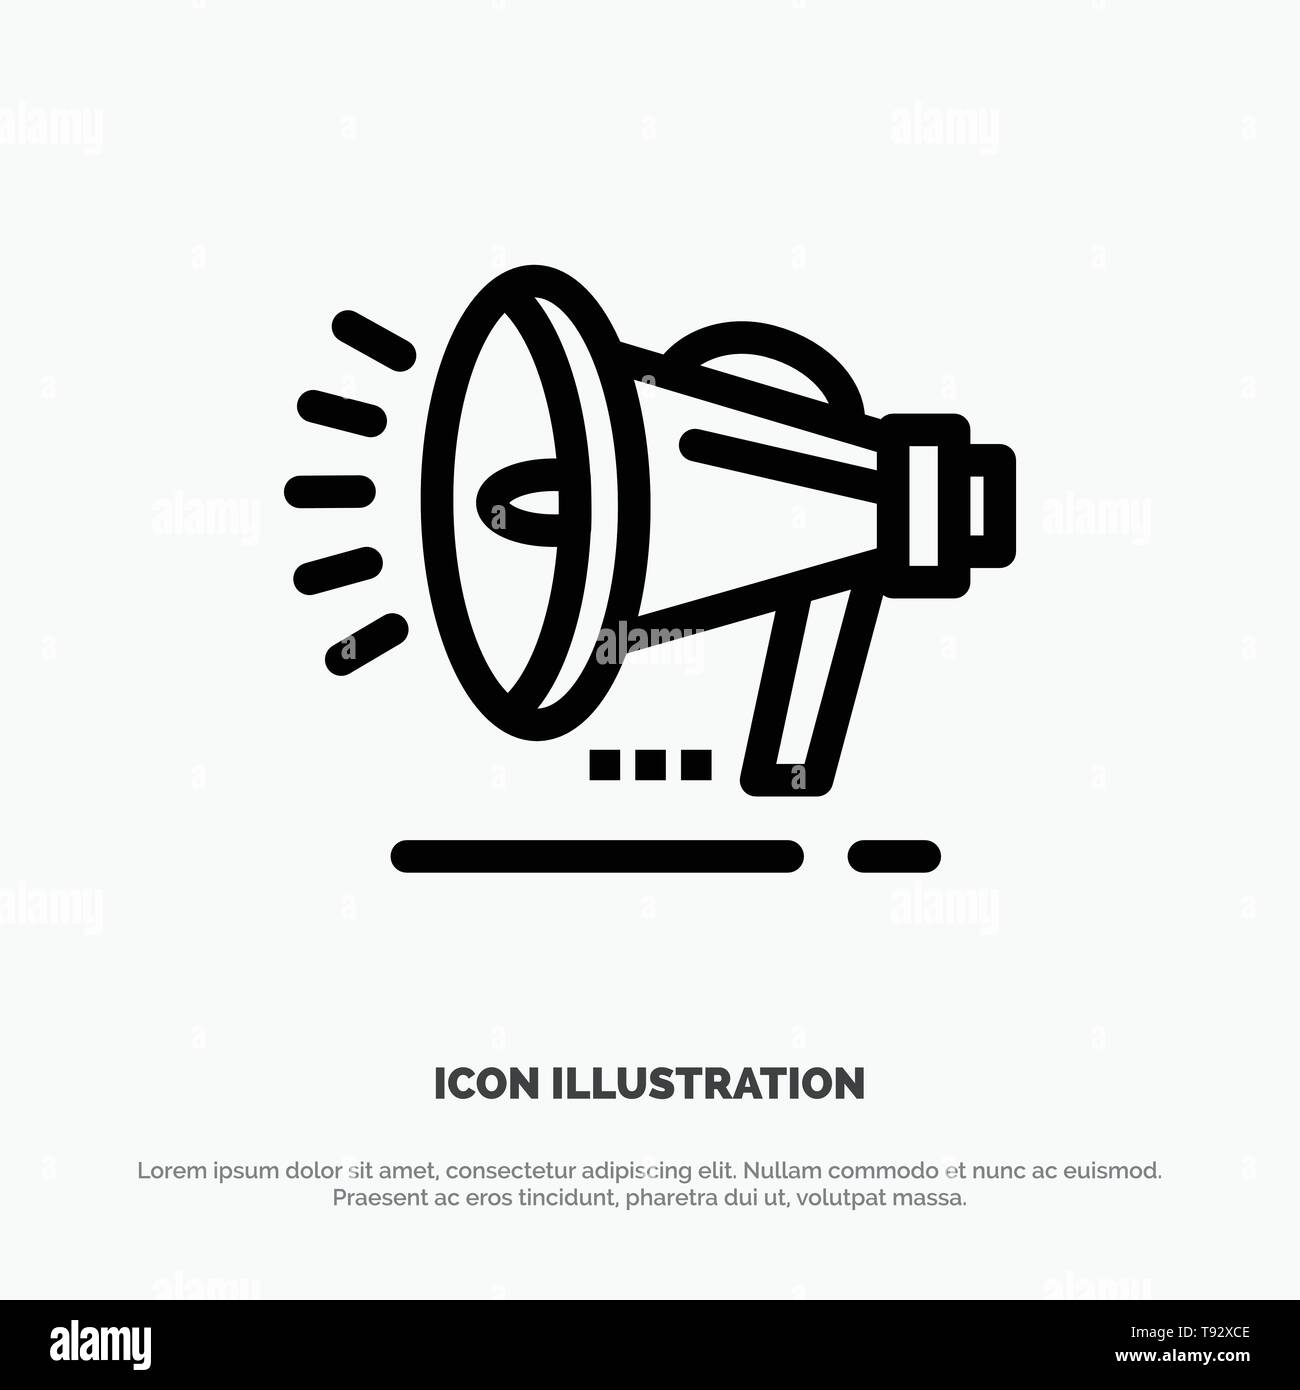 speaker loudspeaker voice announcement line icon vector stock vector image art alamy https www alamy com speaker loudspeaker voice announcement line icon vector image246541694 html